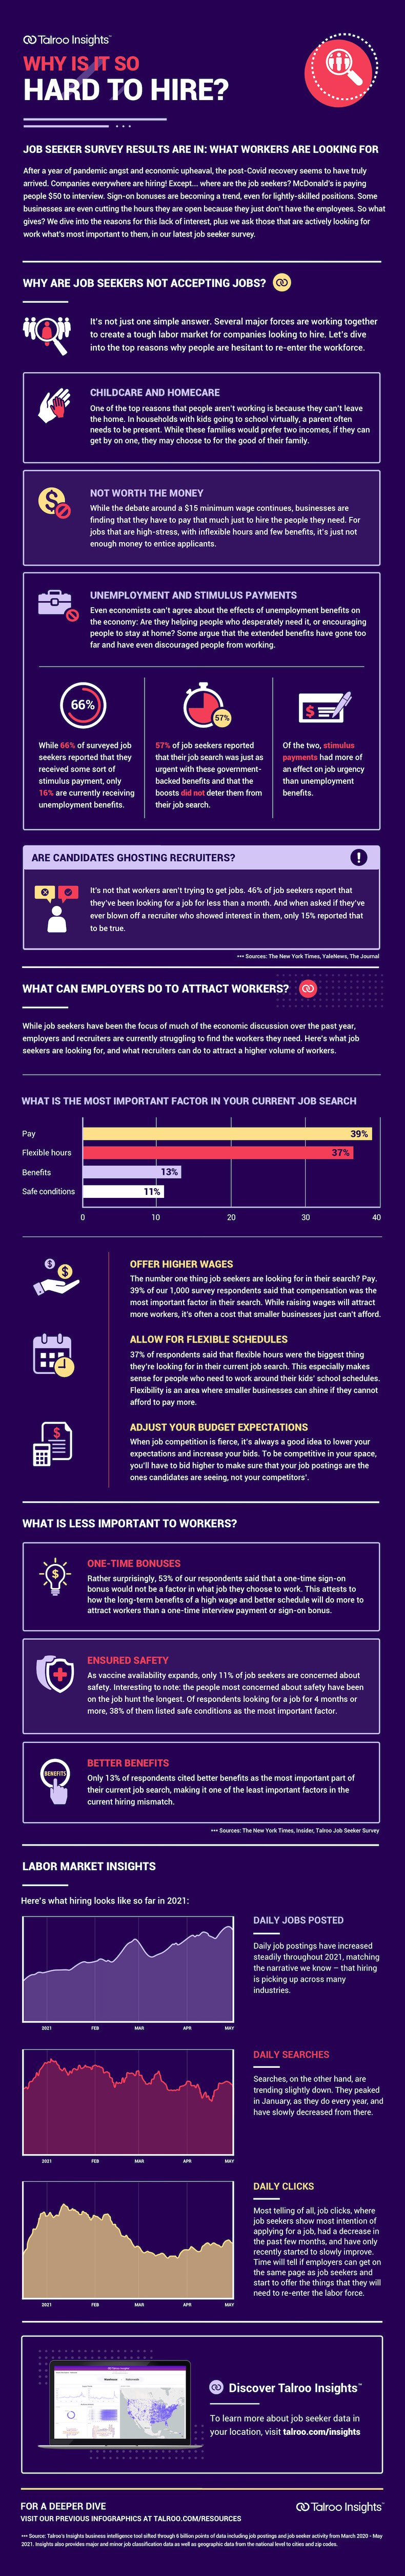 Why is it so hard to hire job seekers infographic